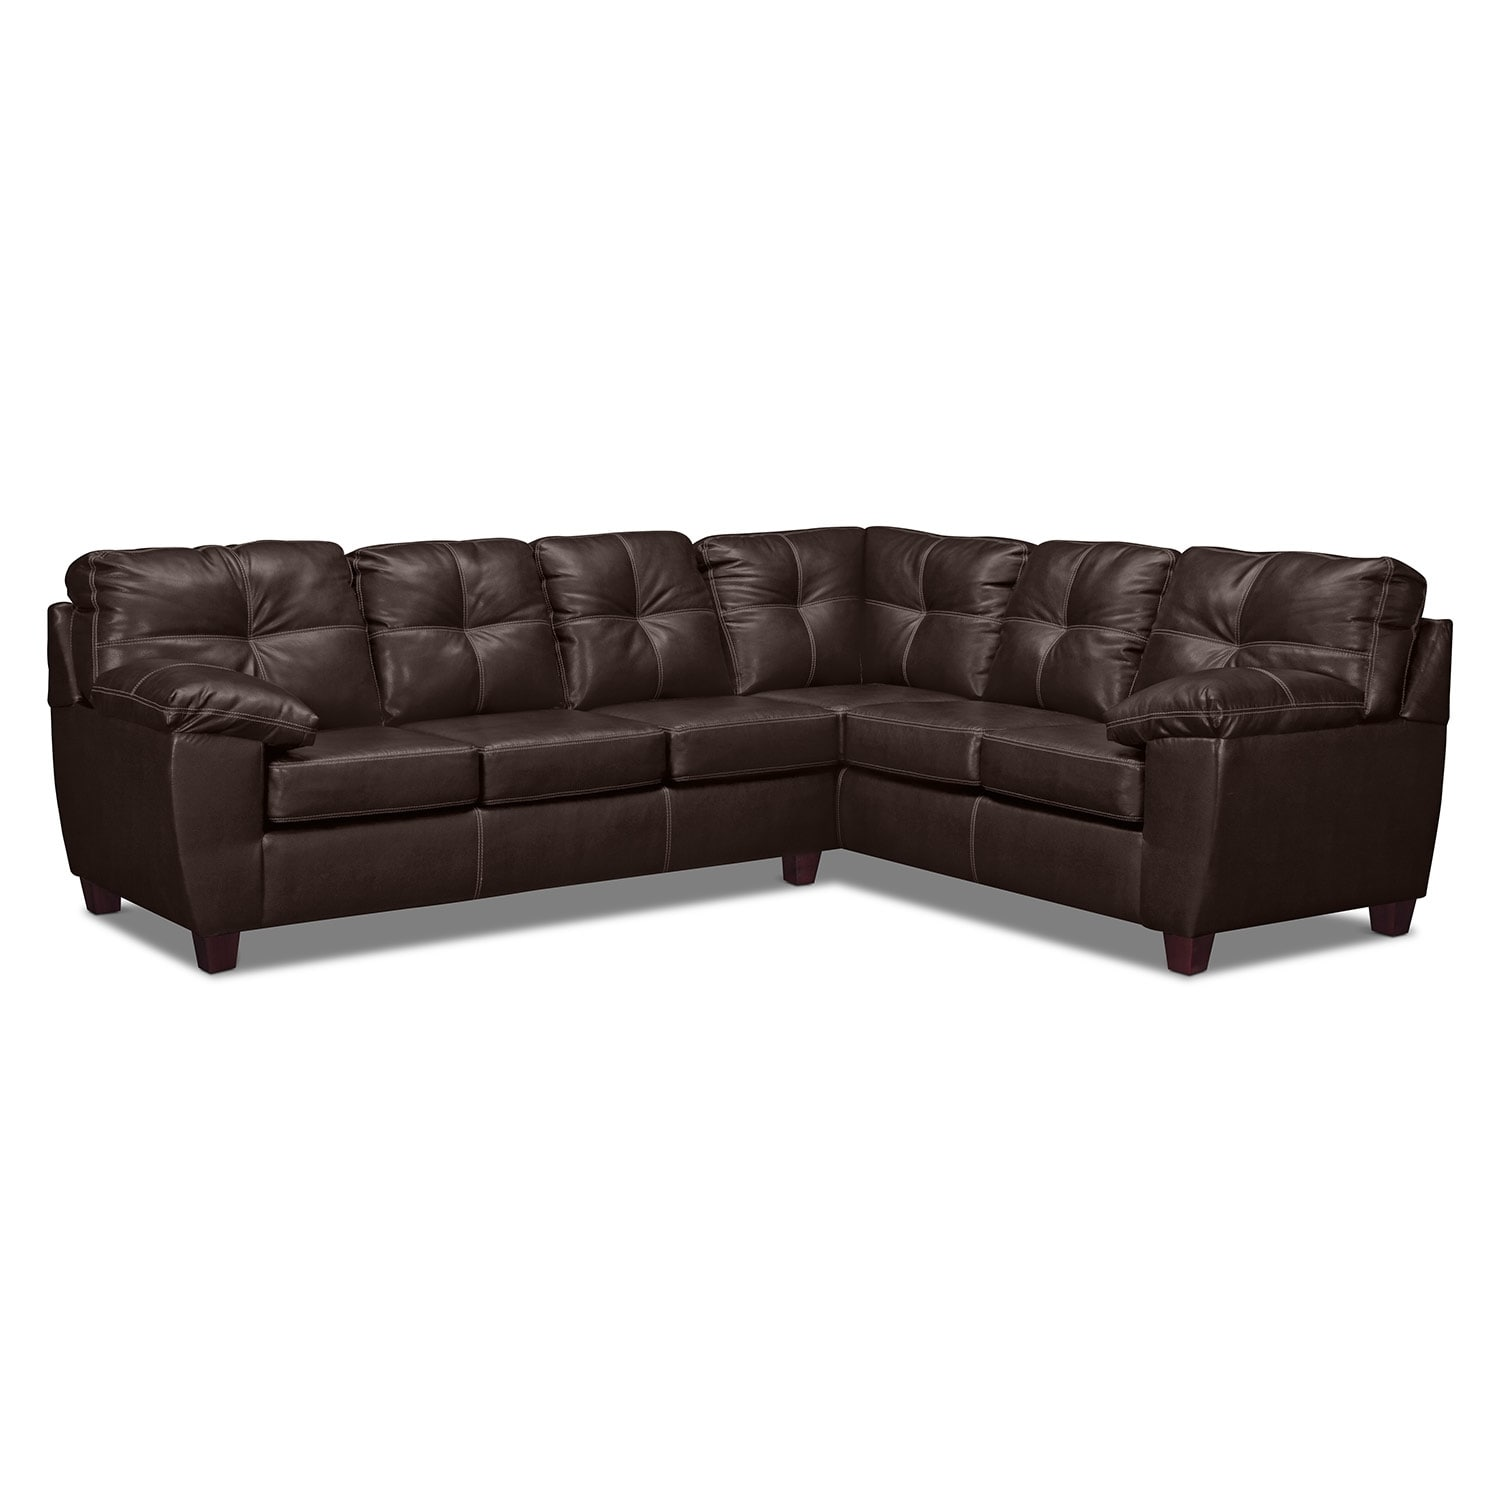 Sale On Sofas On Sale Furniture American Signature Furniture